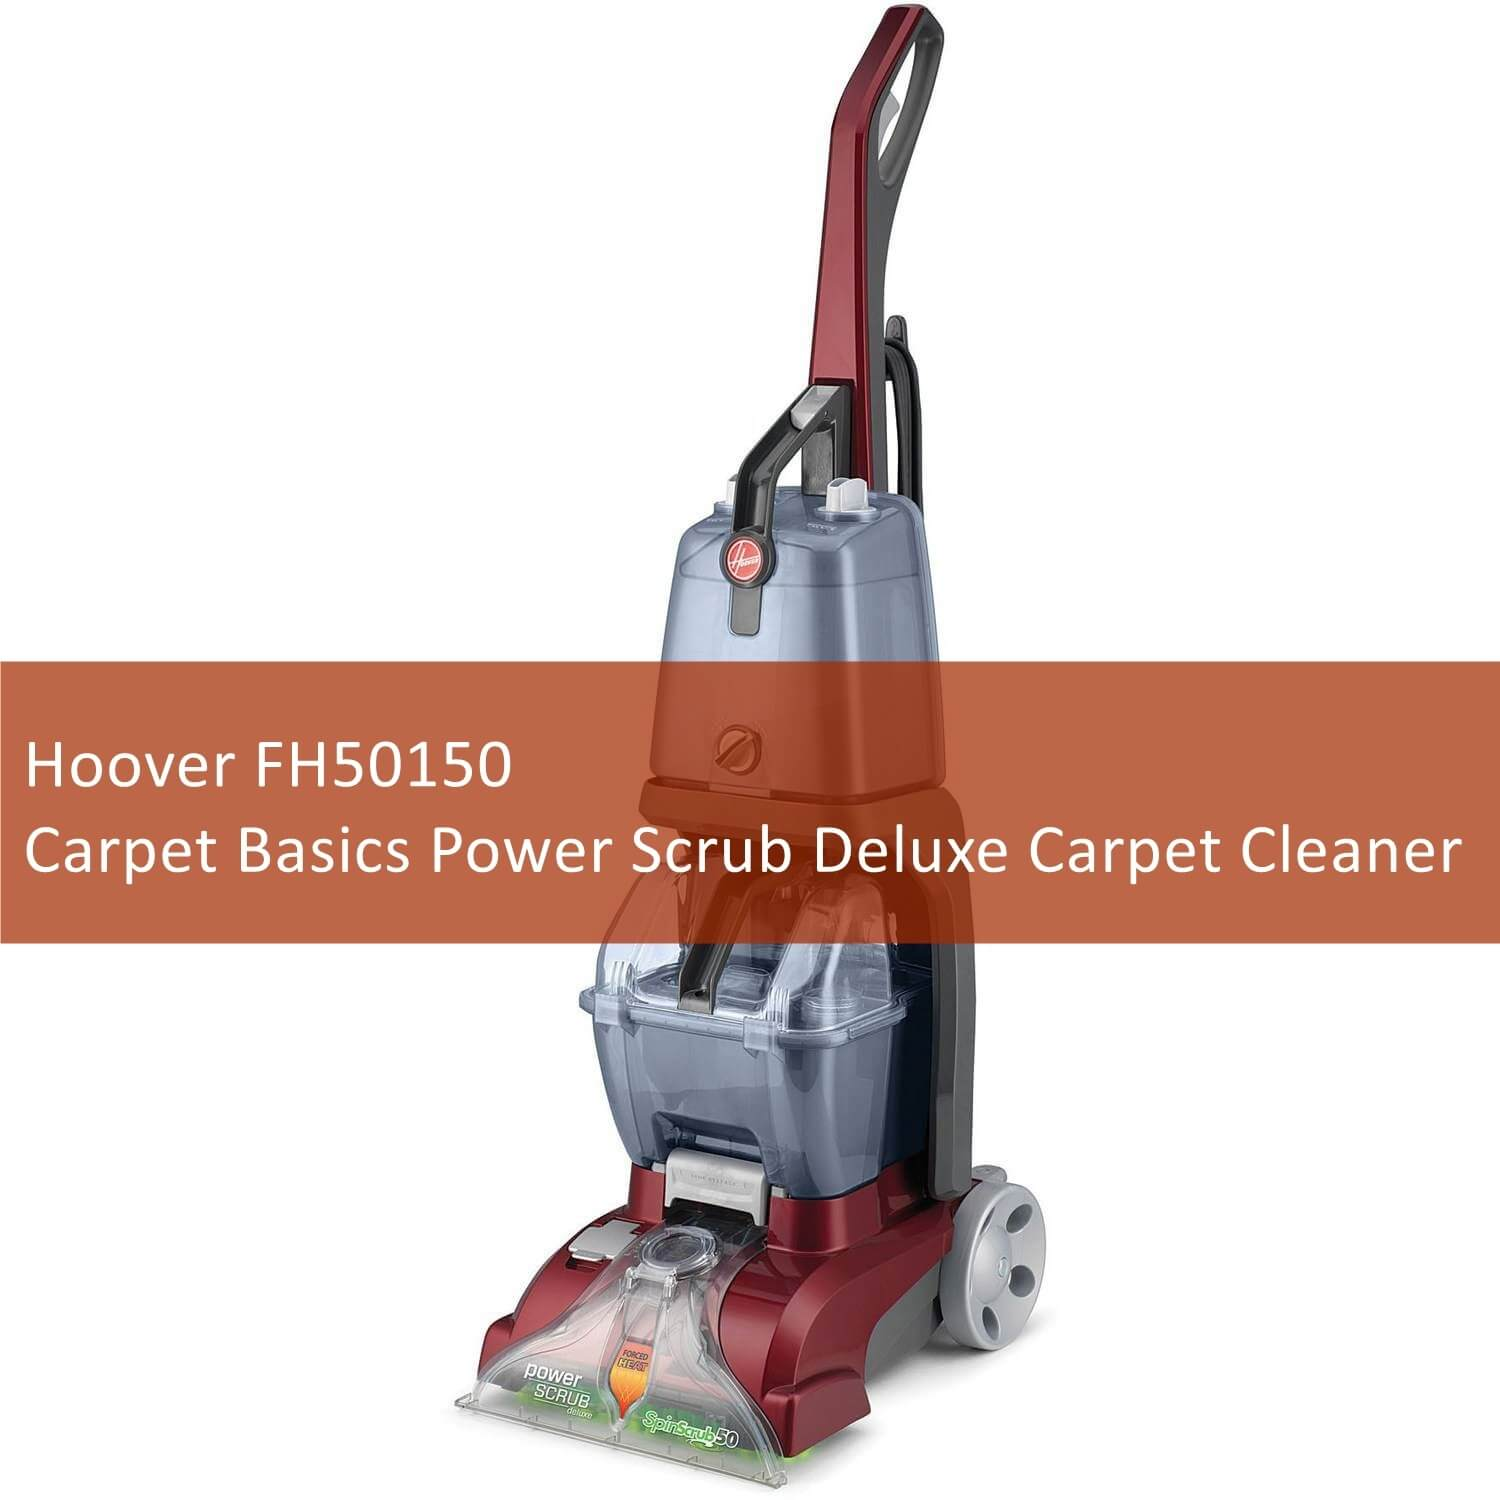 Reviews Of Hoover Carpet Power Scrub Deluxe Cleaner